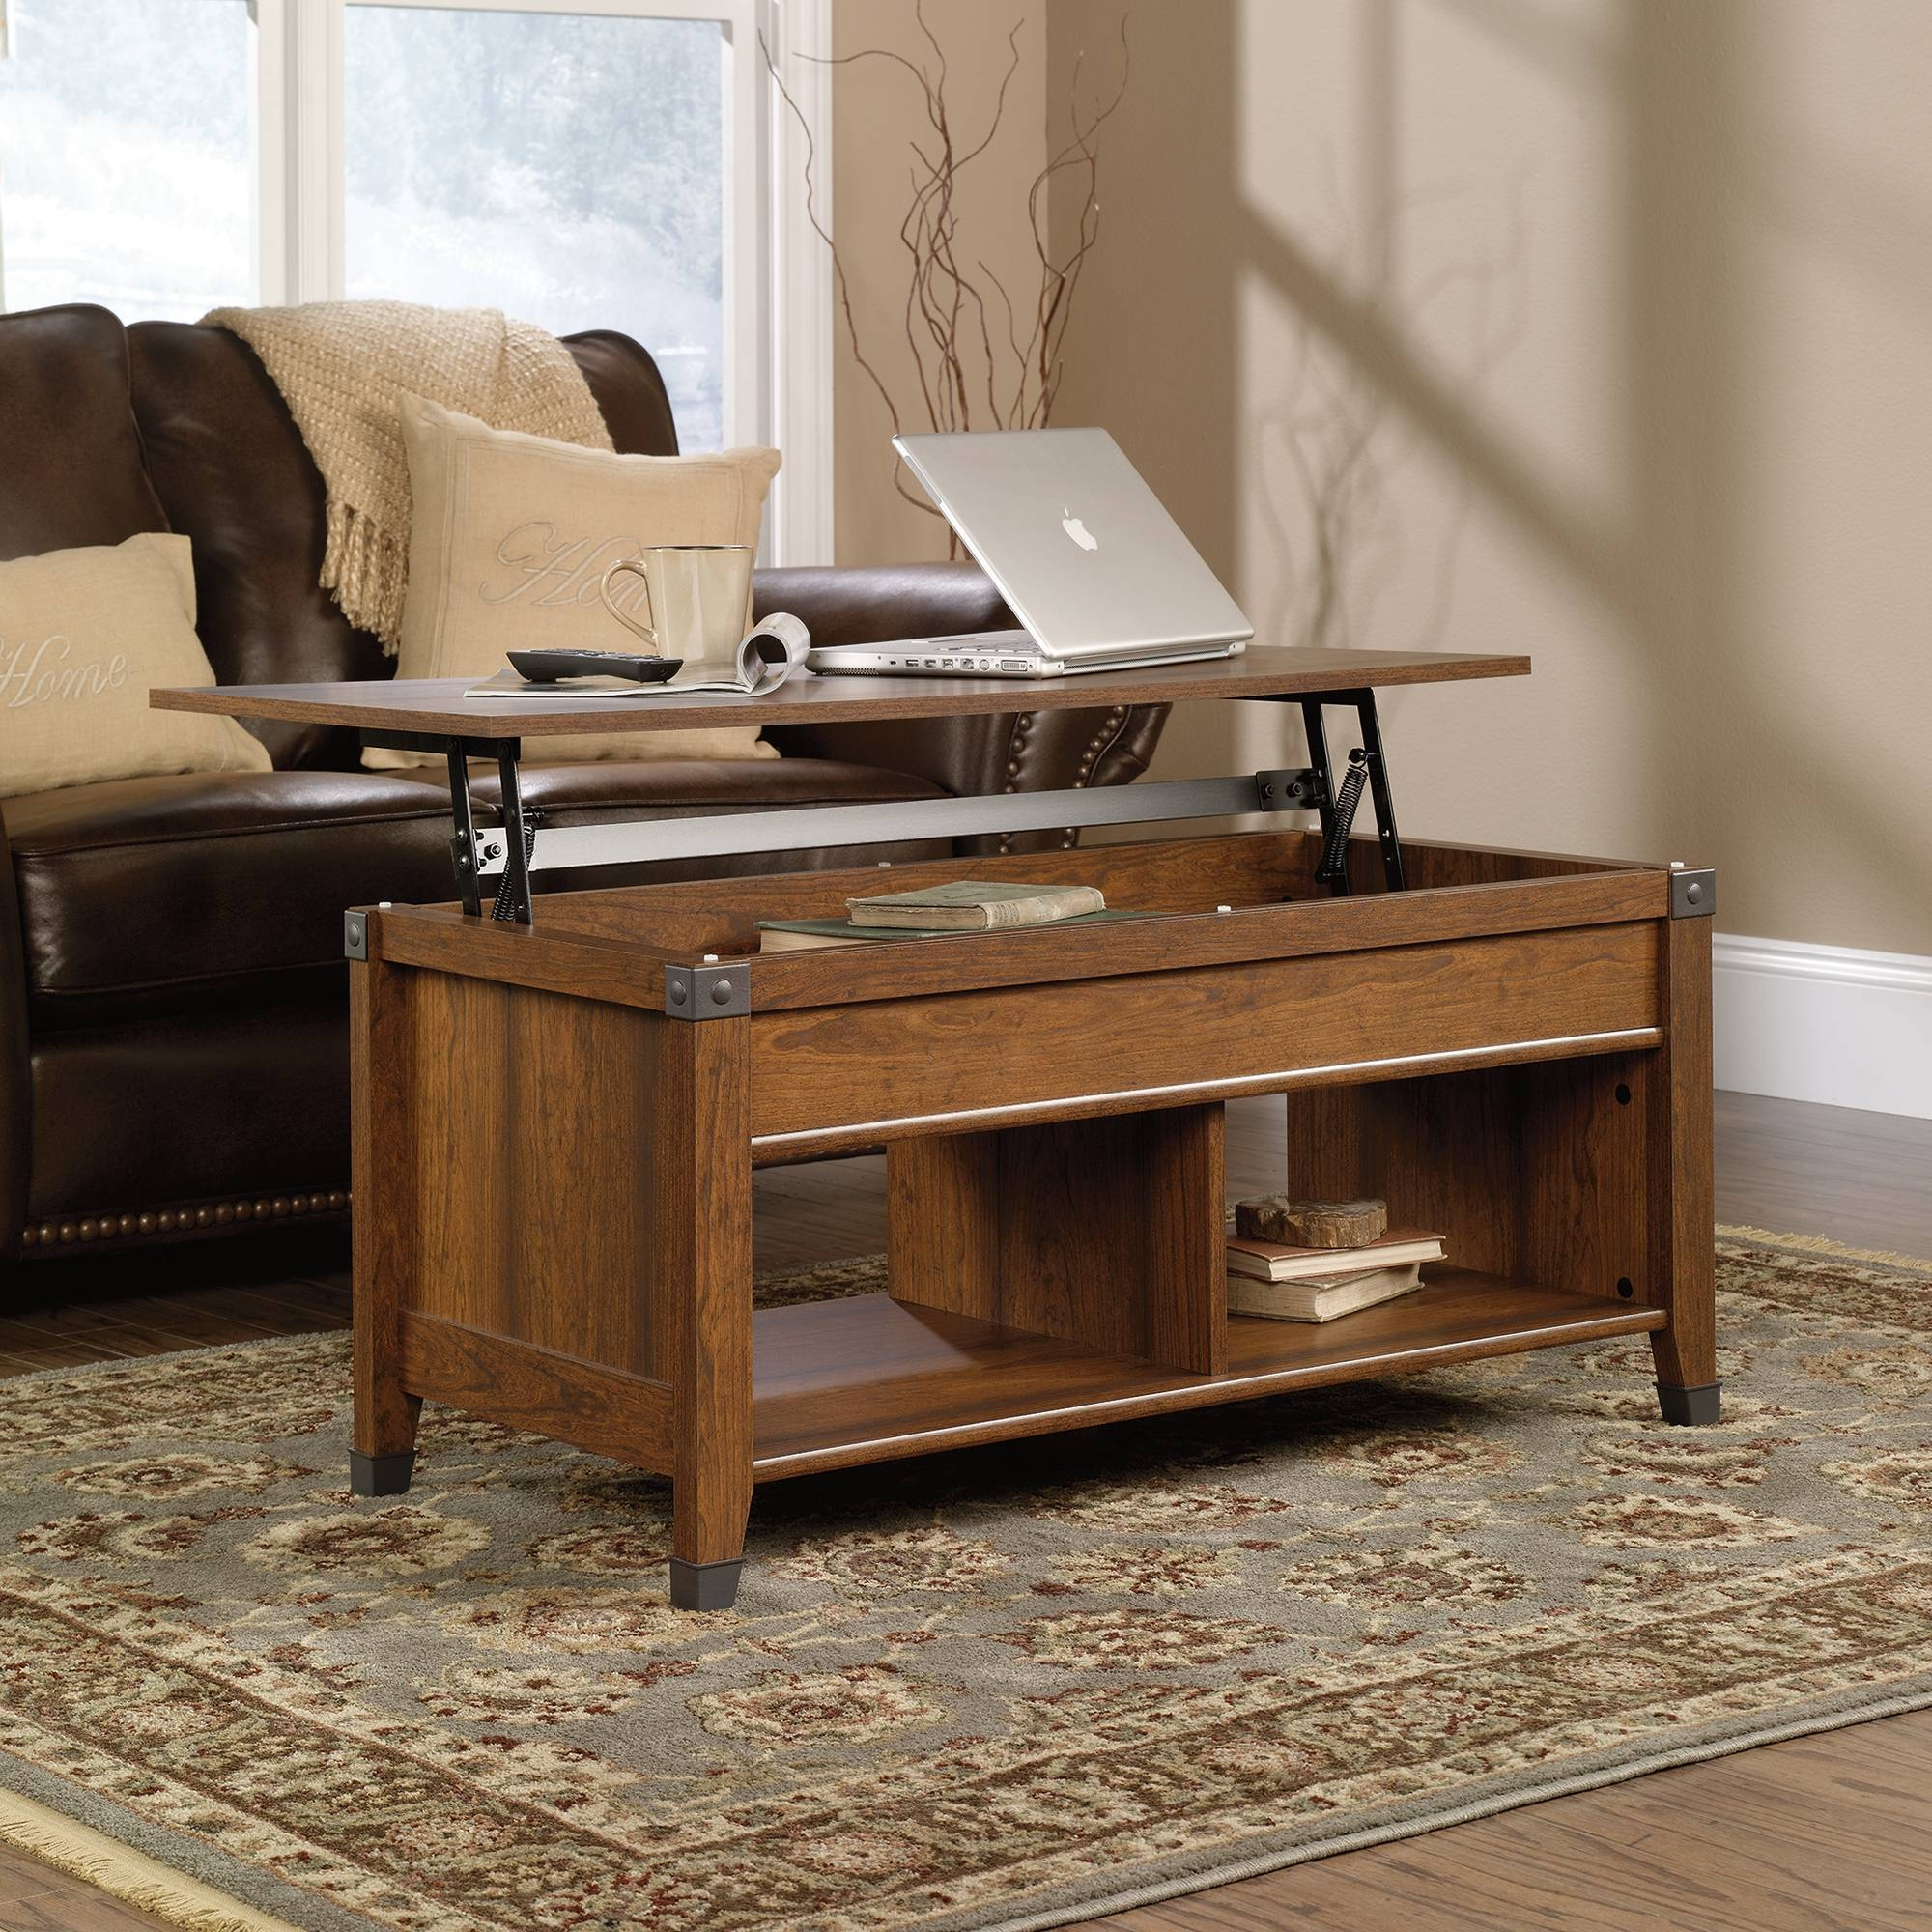 Carson Forge | Lift-Top Coffee Table | 414444 | Sauder inside Coffee Tables With Lifting Top (Image 3 of 30)